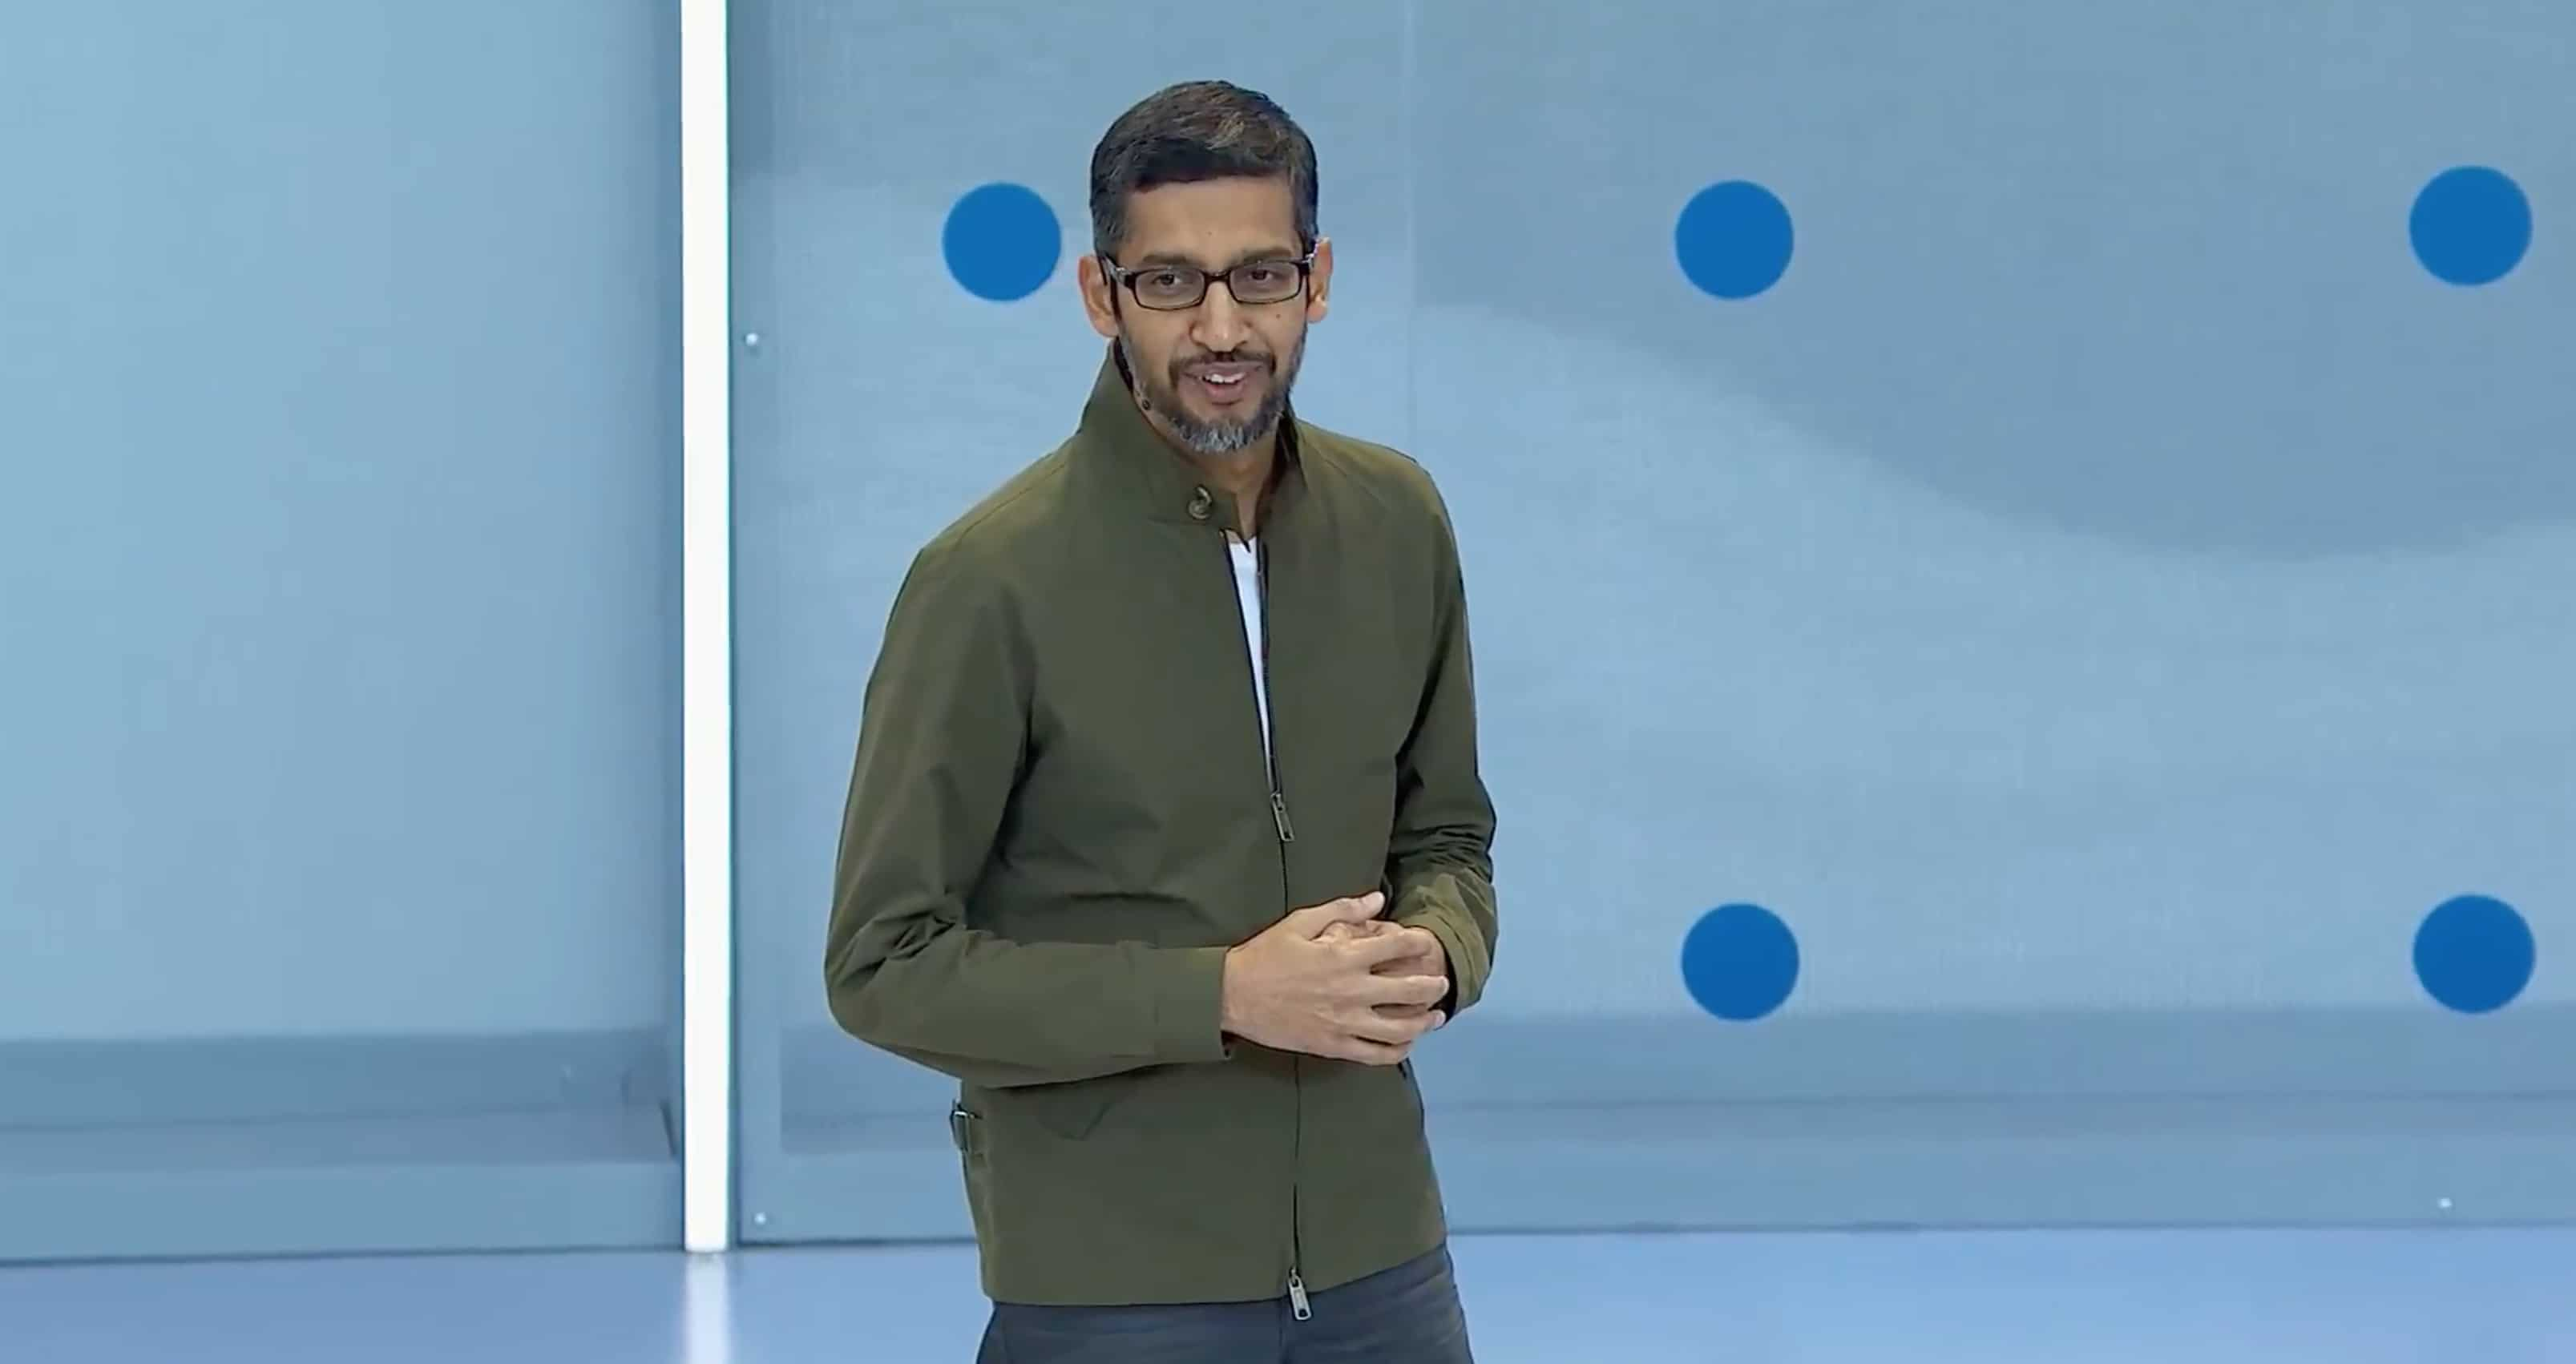 Google I/O 2018 was full of AI surprises.